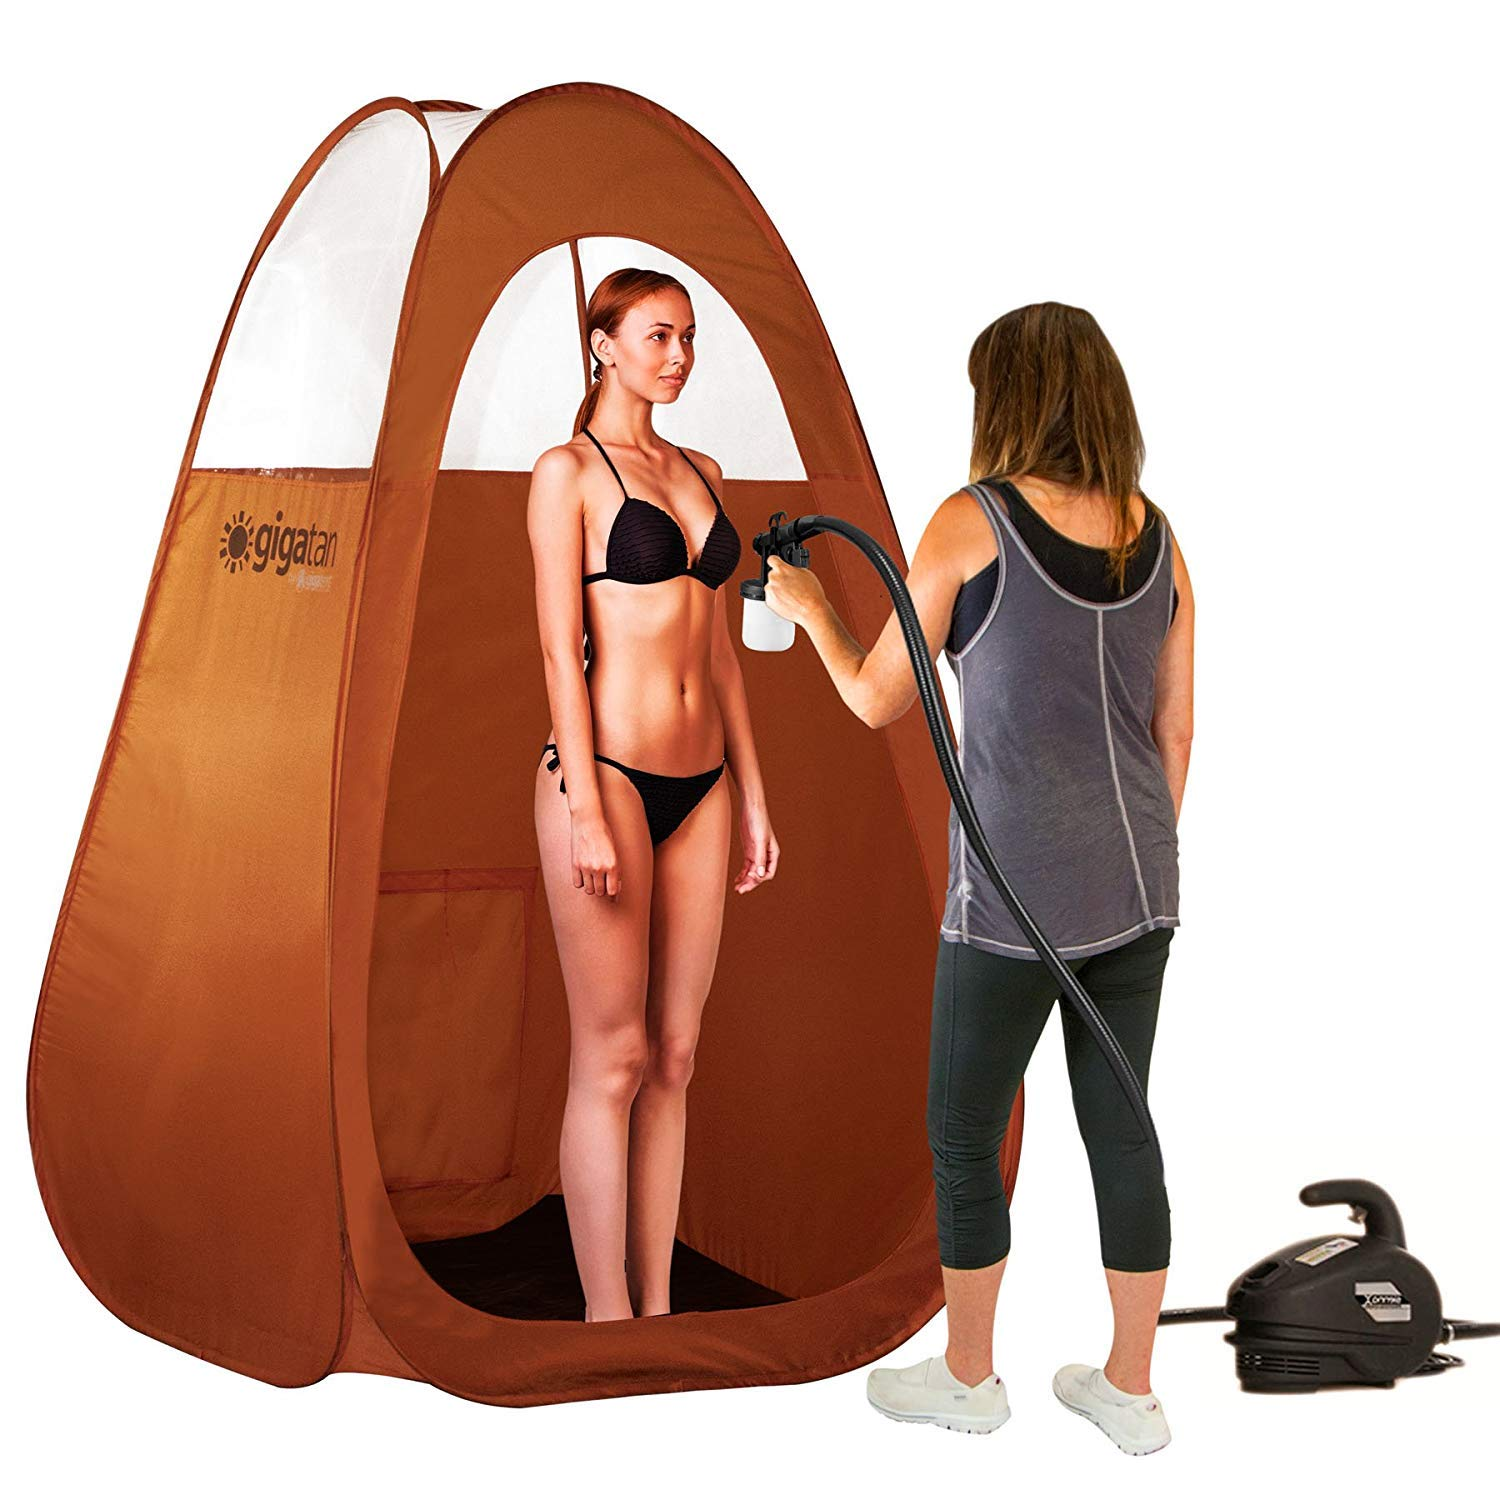 Gigatent Spray Tan Pop Up Tent -  Professional Sunless Tanning Pop-Up Spraying Booth for Airbrush Art, Makeup & Painting - 50'' x 37'', Folds Easily in 30 Seconds - with Carry Bag by GigaTent